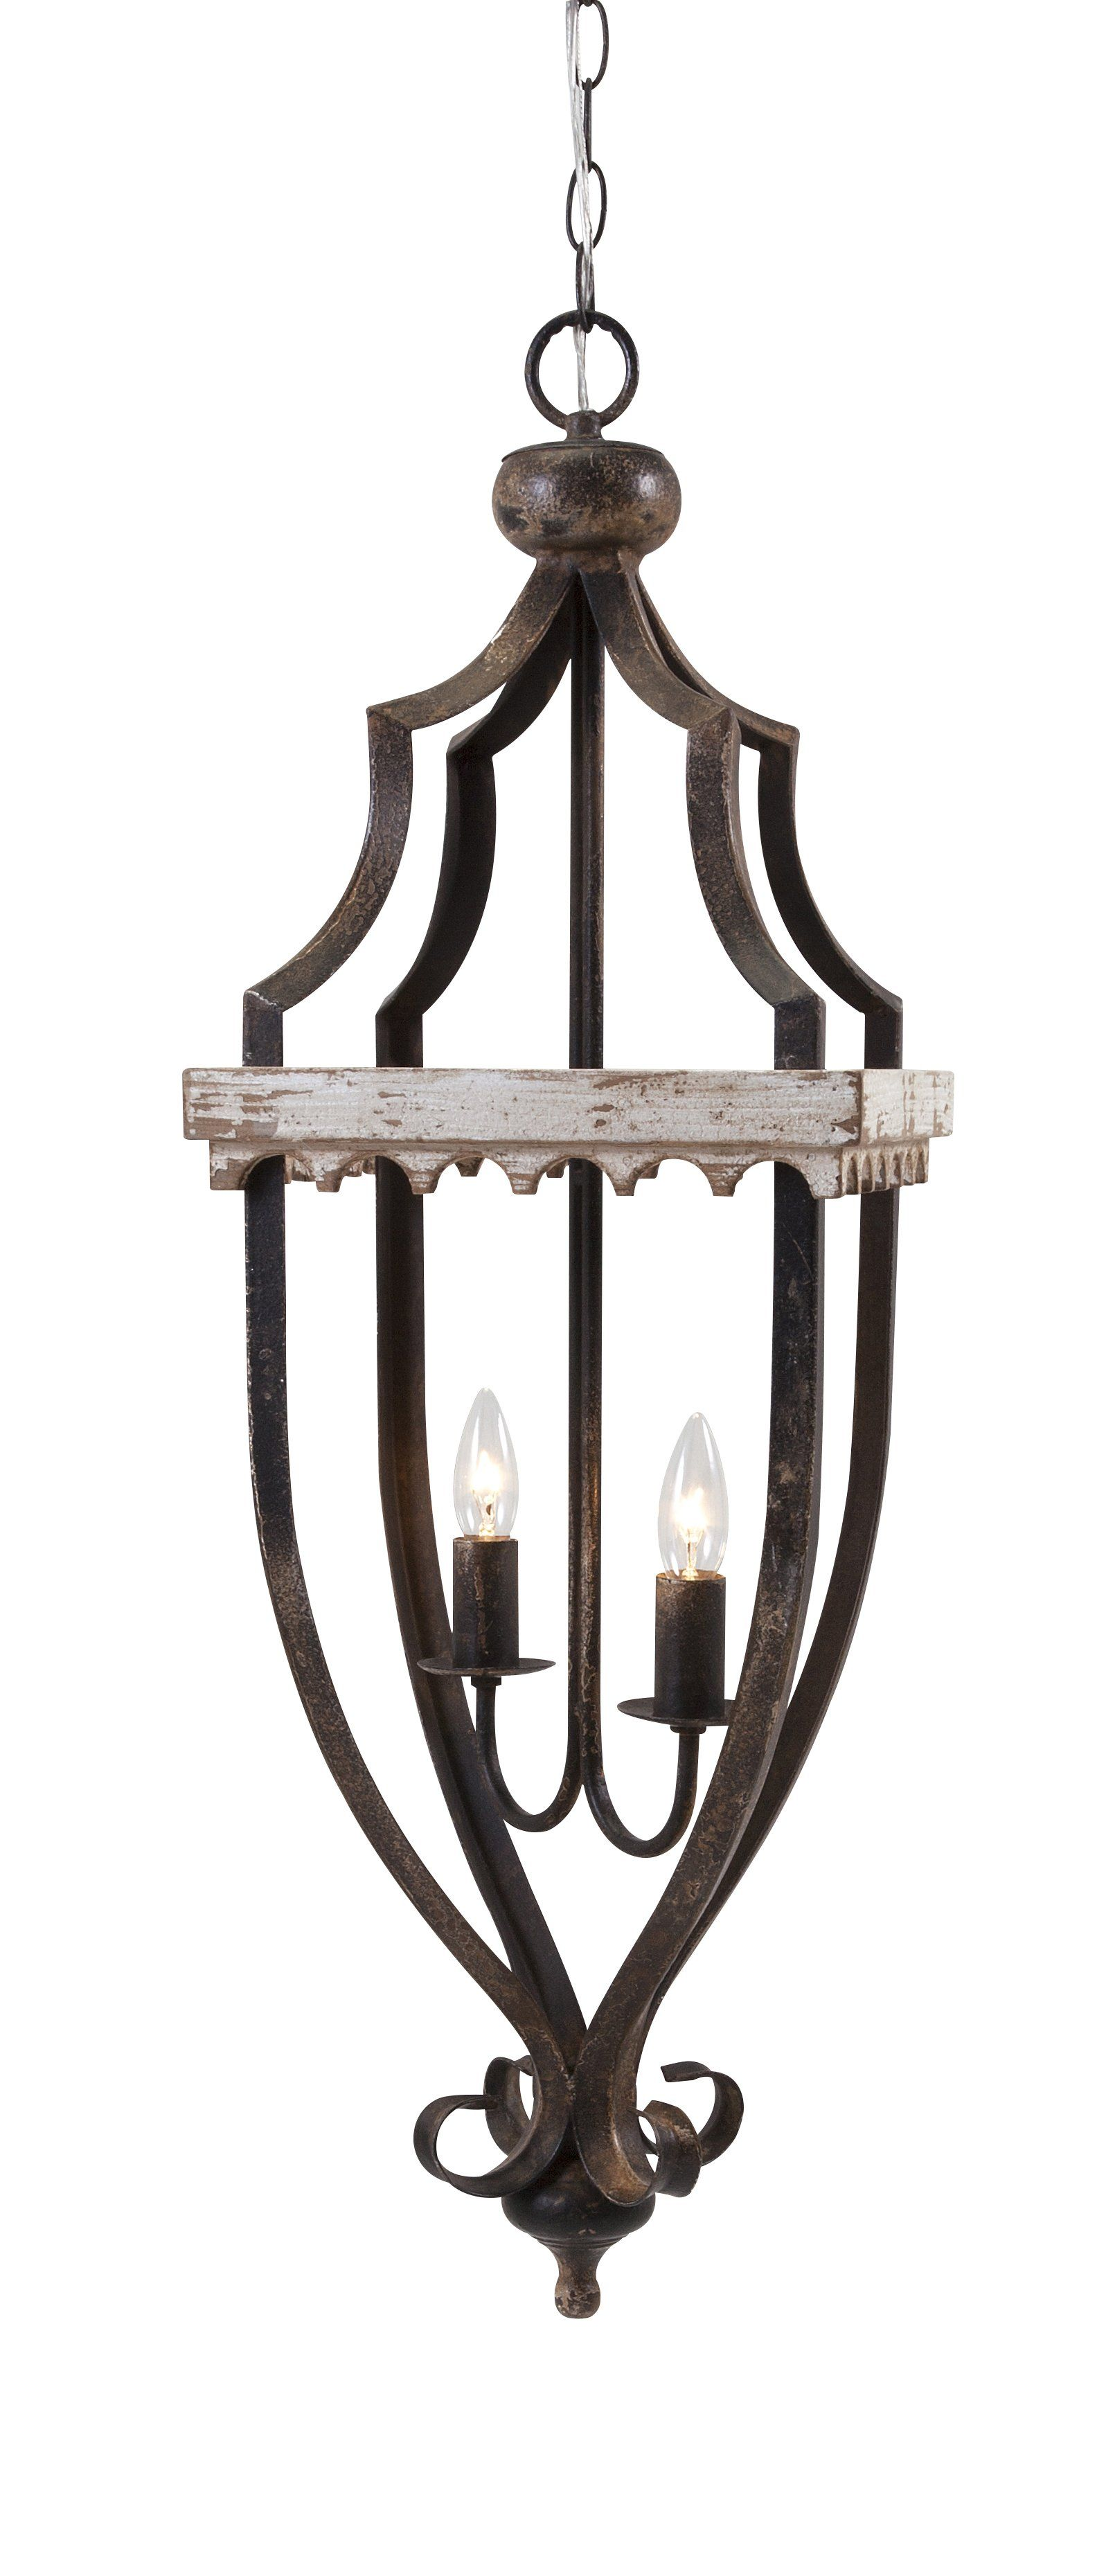 Margo pendant light light up your room with this shabby chic fir